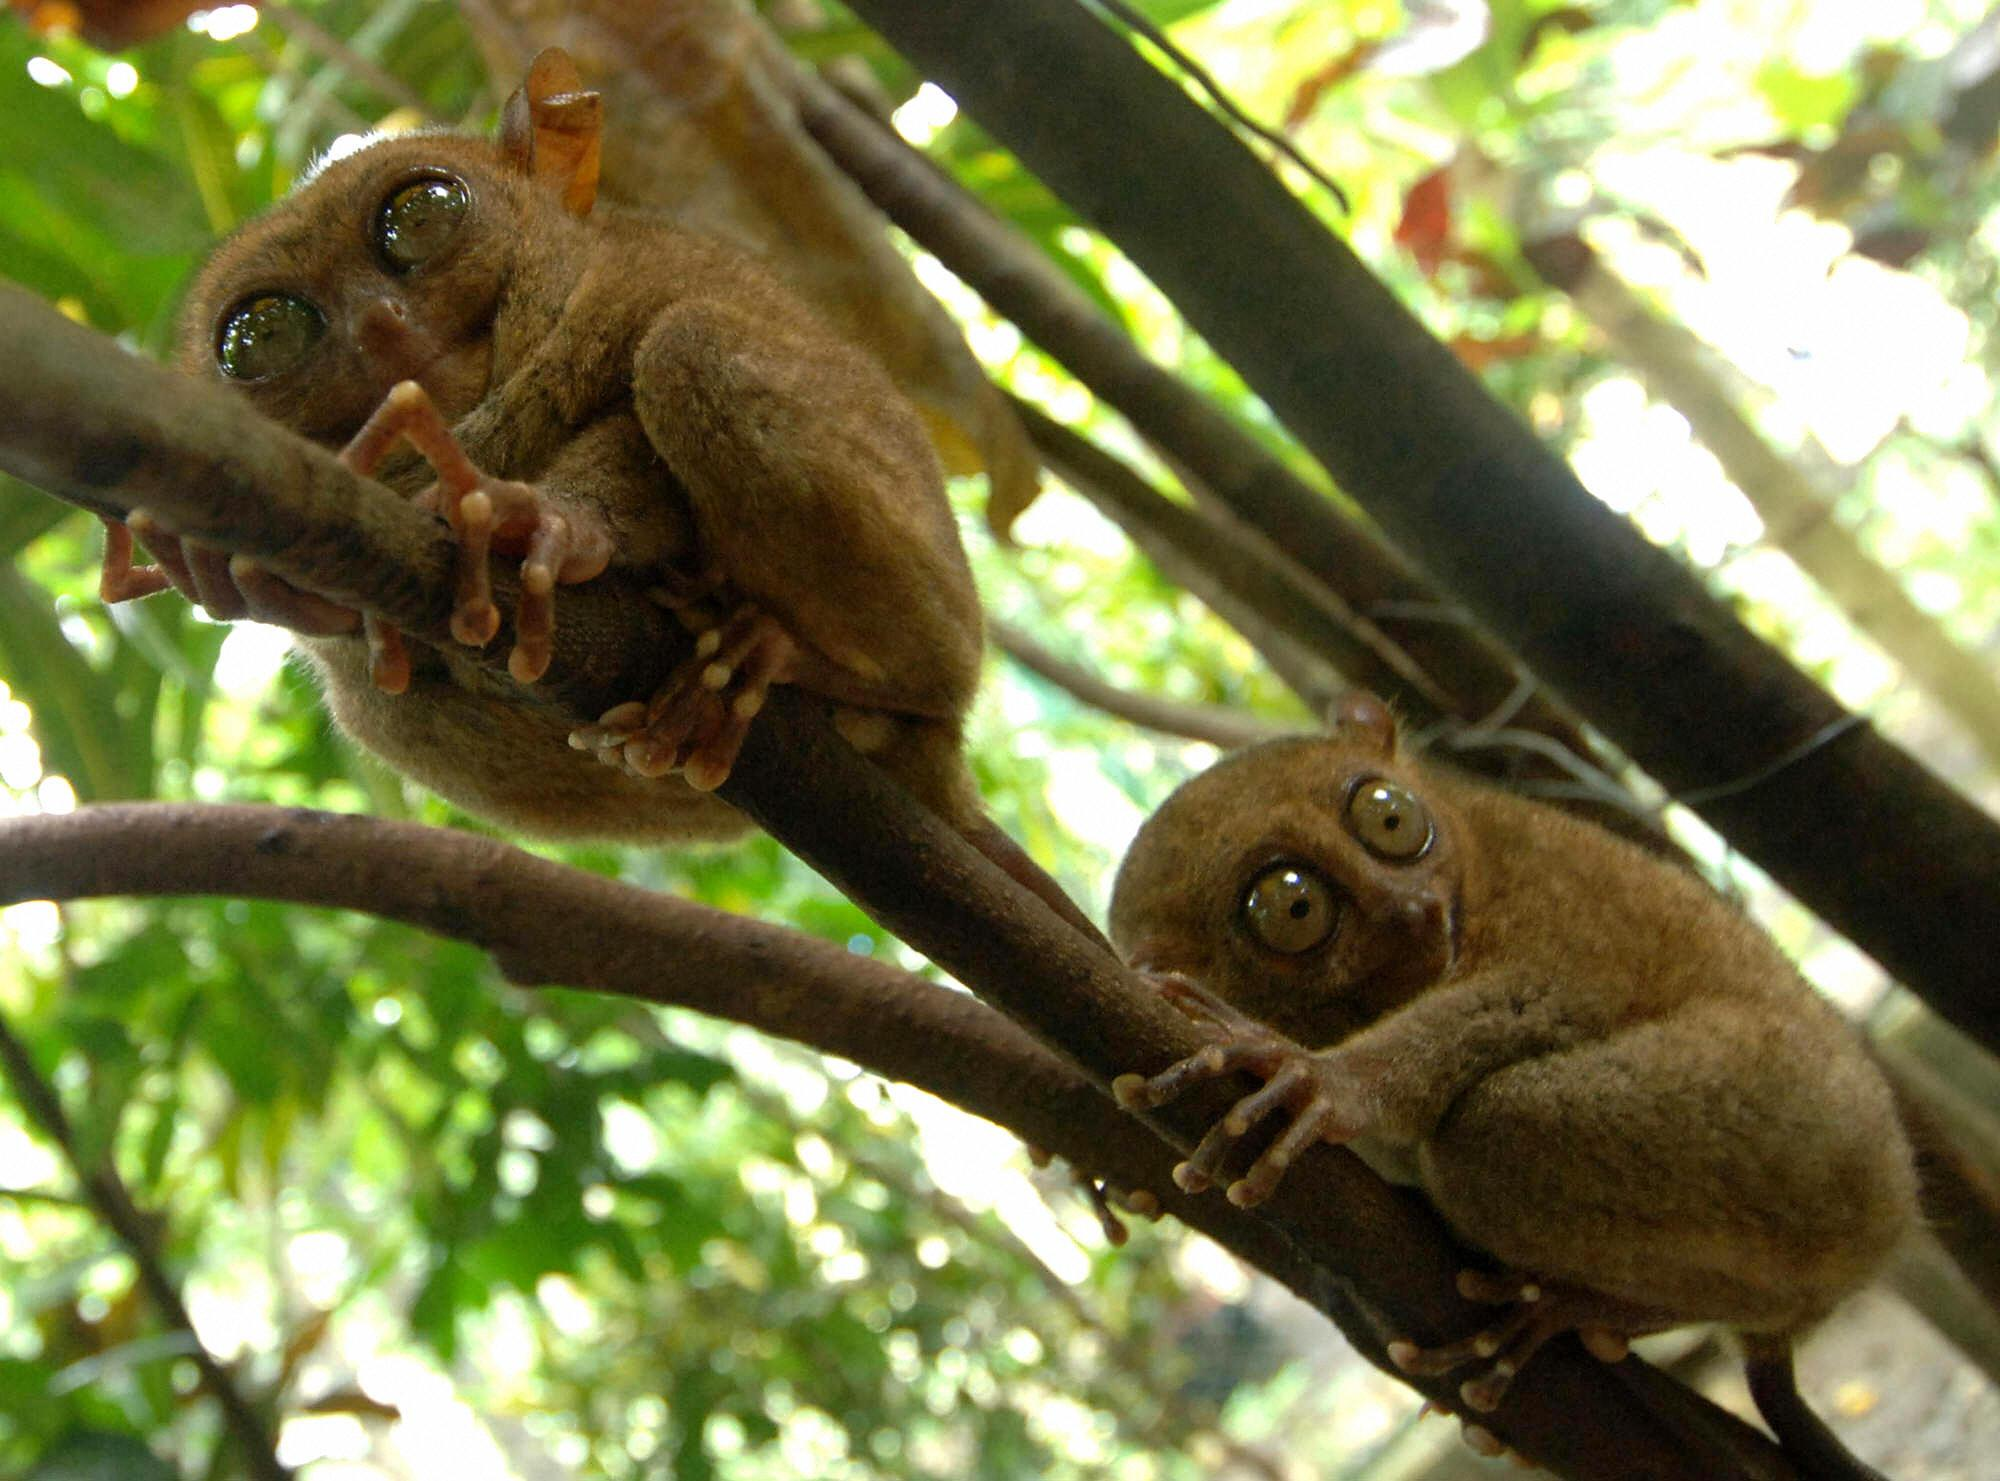 <p><strong>What is it? </strong>The tarsier is the world's smallest primate and a protected species in the Philippines.<br /> <strong>Size:</strong> The head and body range from 10cm to 15 cm in length, but the hind limbs are about twice this long (including the feet), and they also have a slender tail from 20 to 25 cm long. Their fingers are also elongated, with the third finger being about the same length as the upper arm.<br /> <strong>Lives:</strong> Several Southeast Asian islands, including the Philippines, Sulawesi, Borneo, and Sumatra.<br /> <strong>Eats:</strong> They are primarily insectivorous, and catch insects by jumping at them. They are also known to prey on birds, snakes, lizards, and bats.<br /> <strong>Fun fact:</strong> Tarsiers are small animals with enormous eyes; each eyeball is approximately 16mm in diameter and is as large as its entire brain.</p>